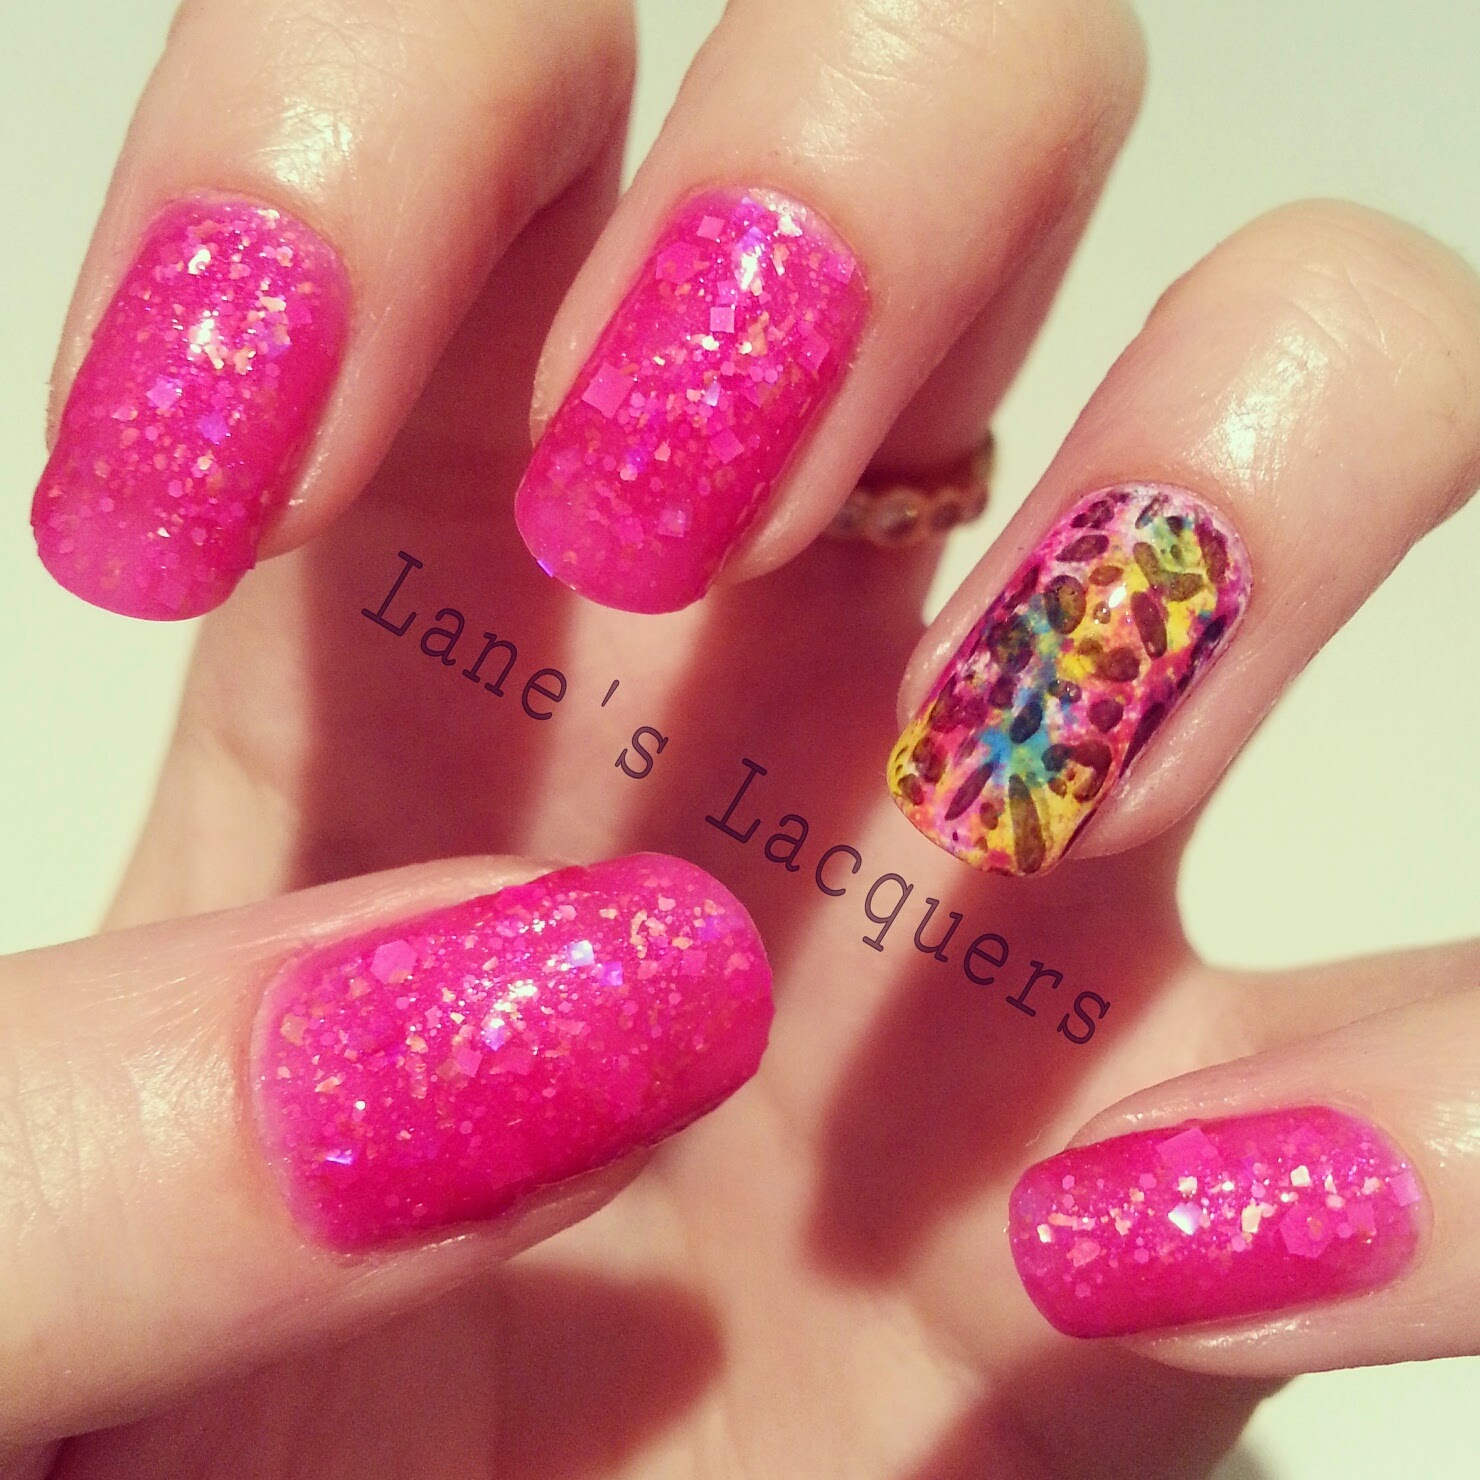 hare-polish-for-the-love-of-lisa-frank-nail-art